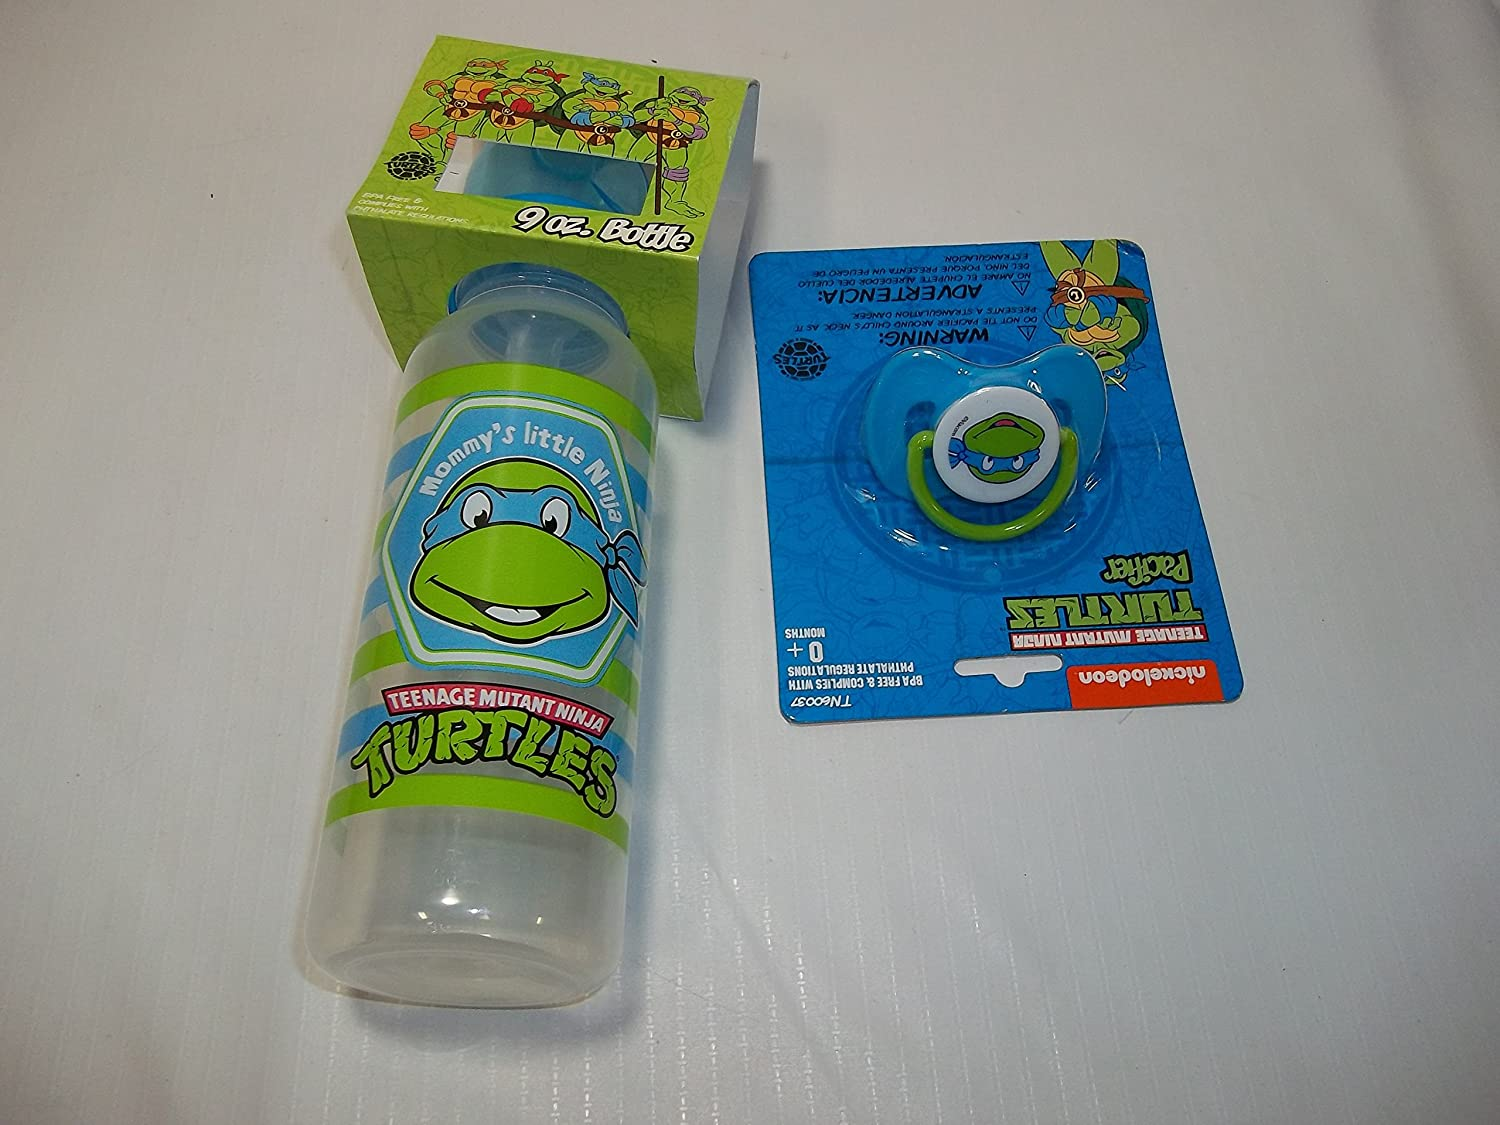 Amazon.com : Teenage Mutant ninja turtles 9 oz bottle & pacifier set ...